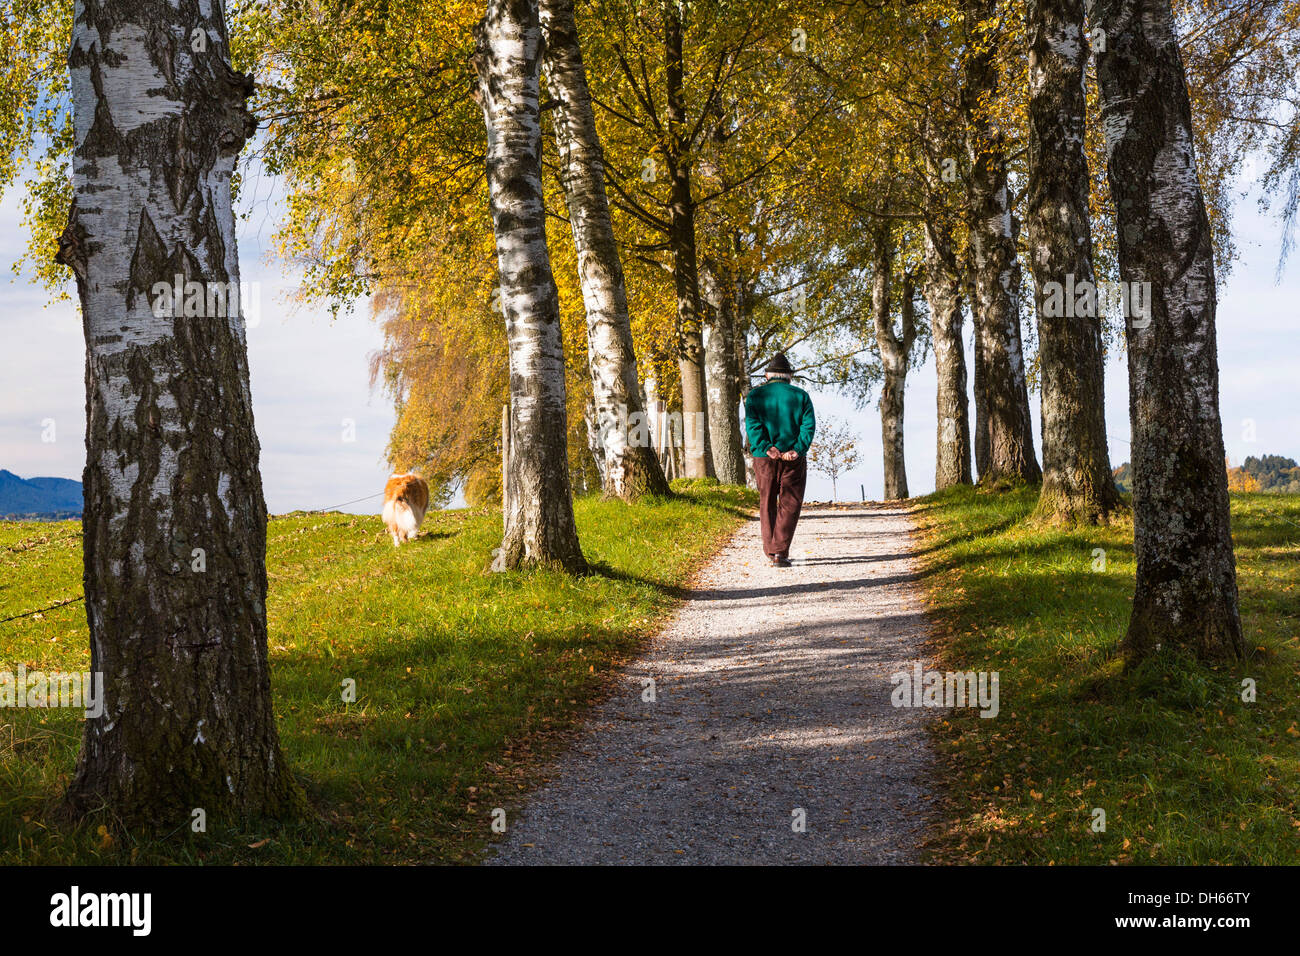 Rambler with a dog walking down a birch tree alley in autumn, Uffing, Upper Bavaria, Bavaria, Germany - Stock Image